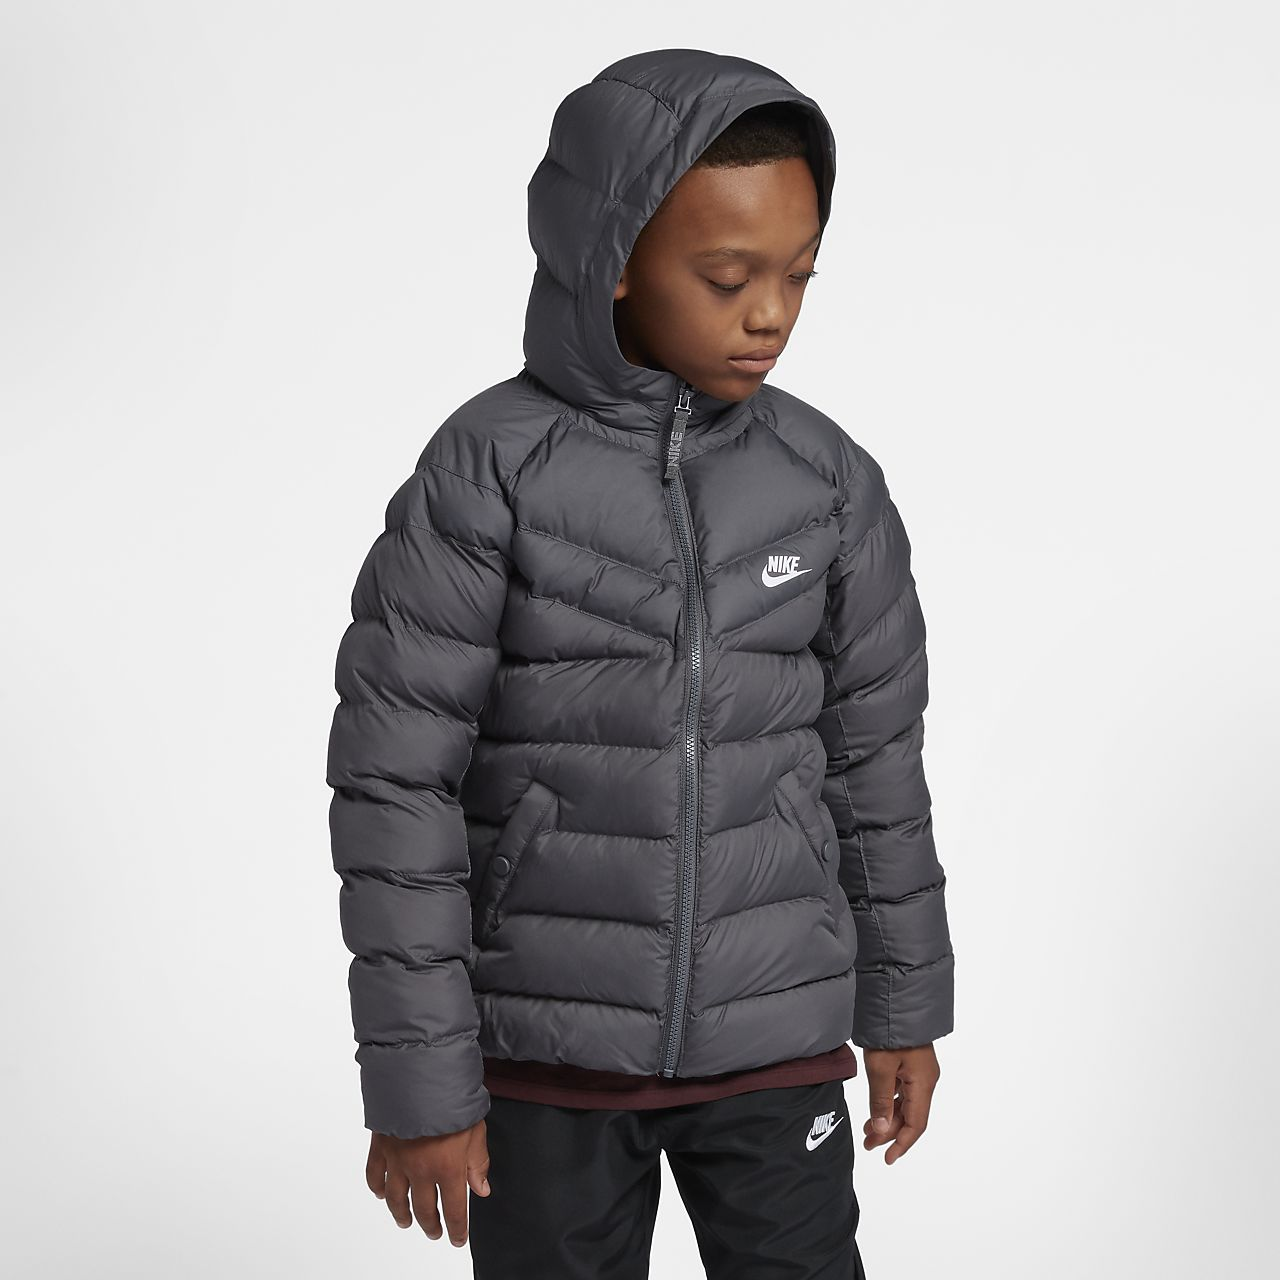 save off 652f0 3d7ba Nike Sportswear Older Kids  Synthetic-Fill Jacket. Nike.com GB